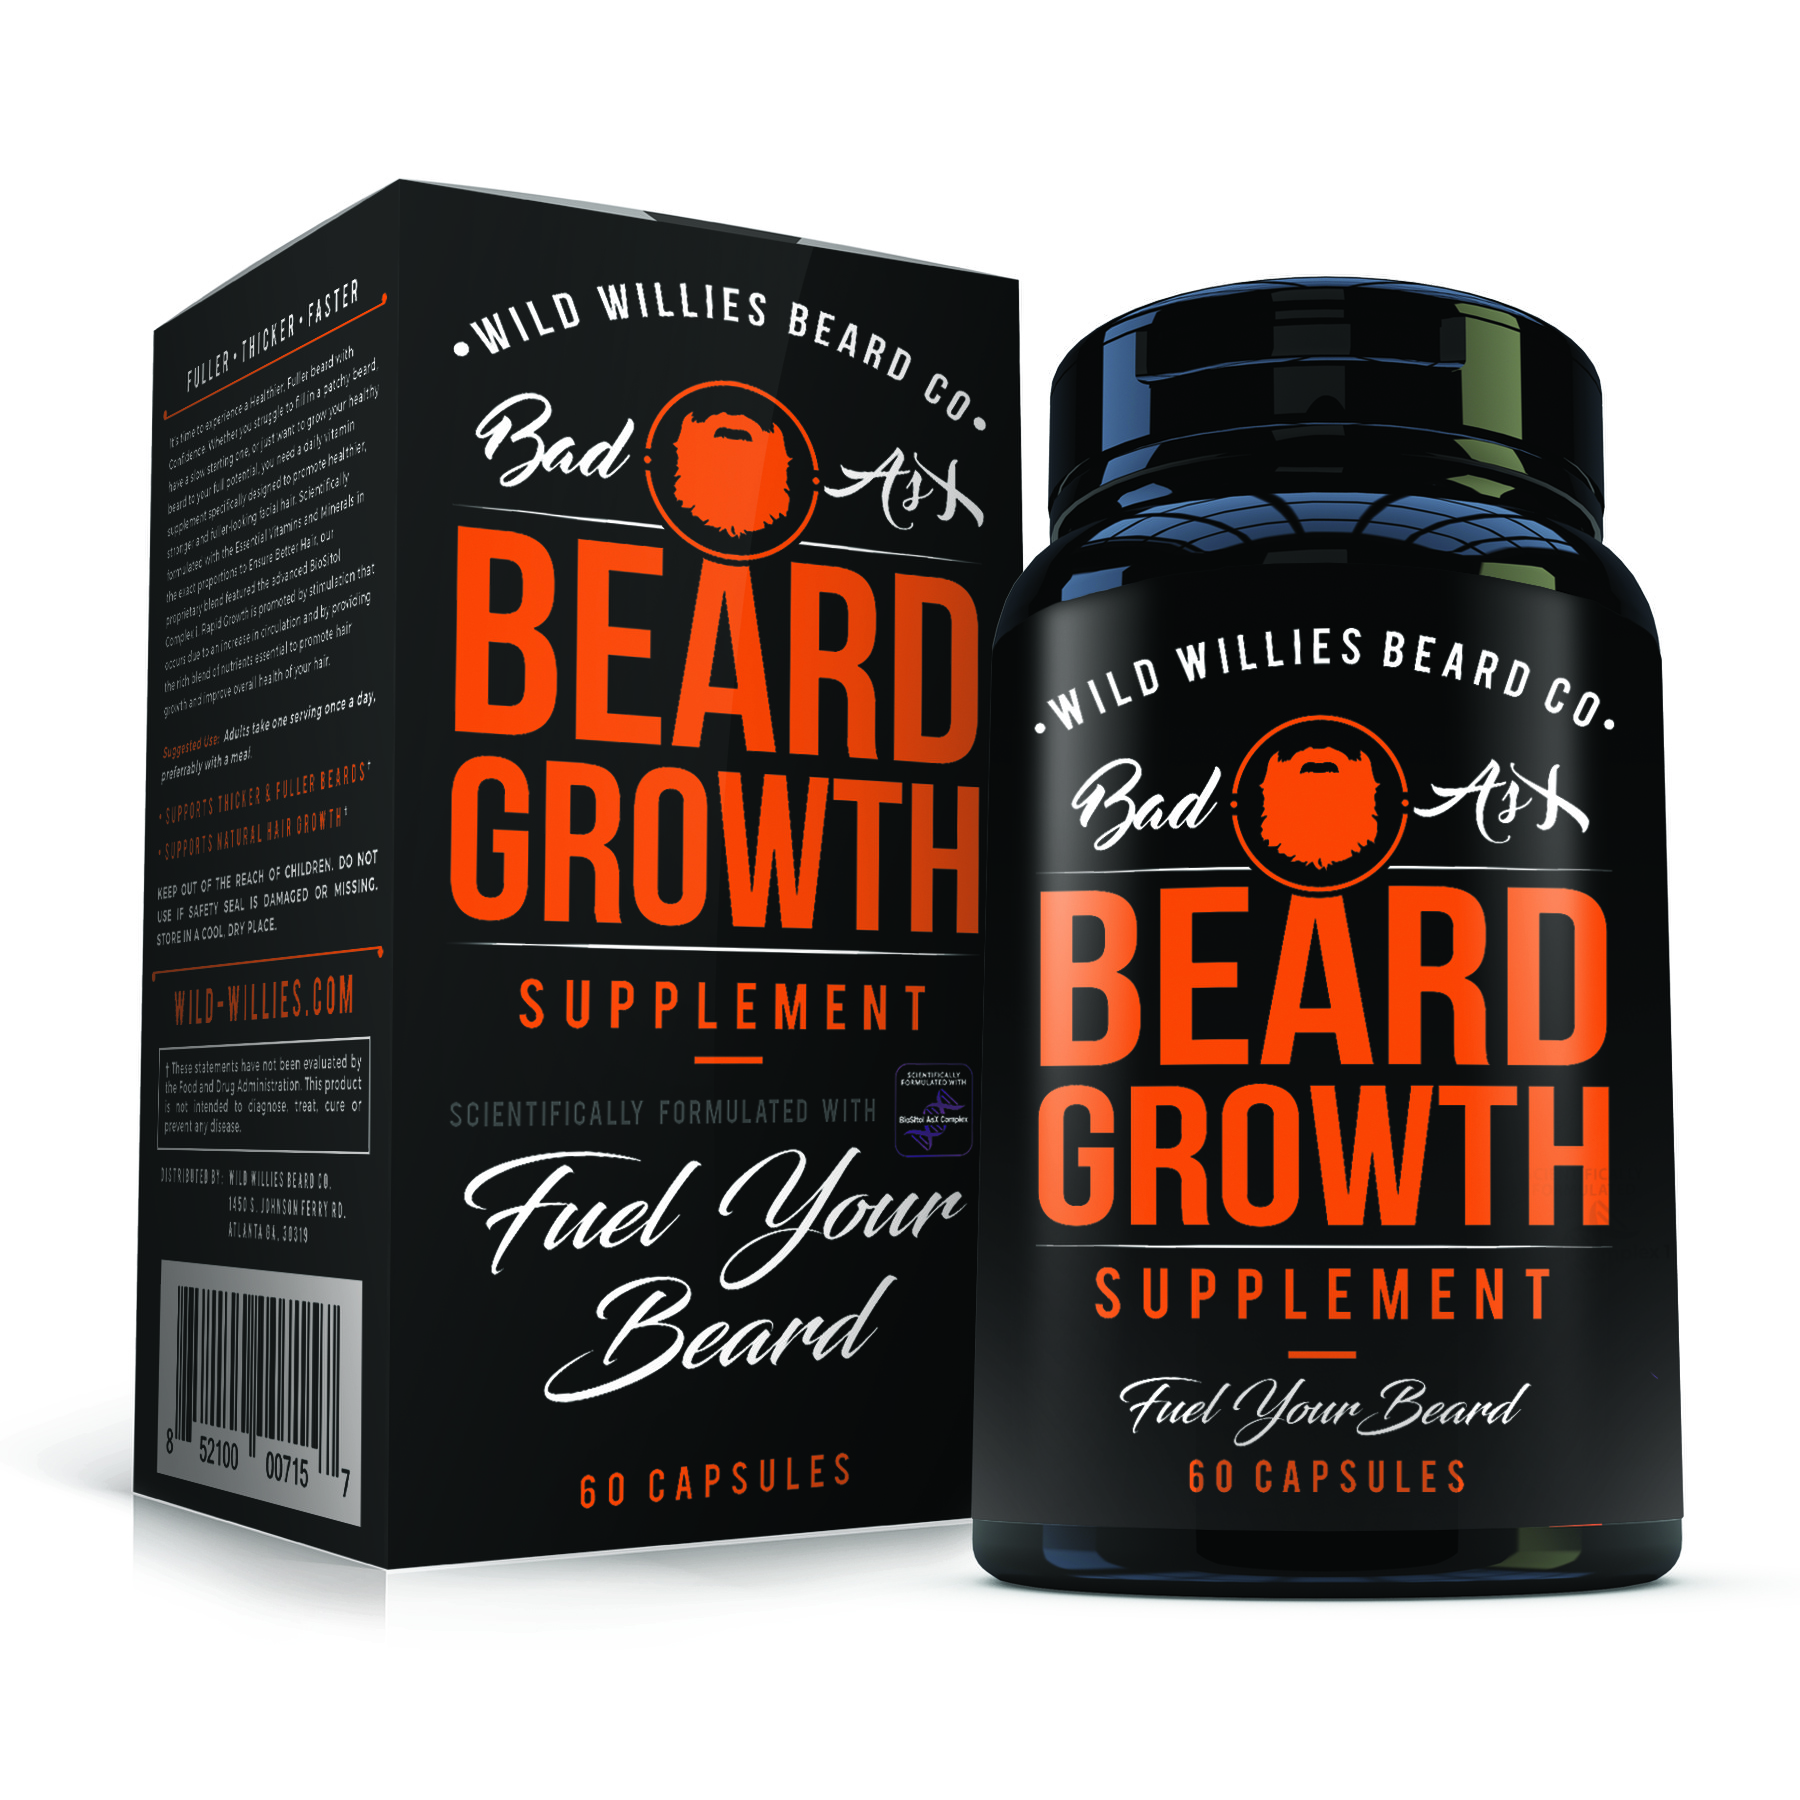 Wild Willies Beard Growth Supplement with Biositol AsX, 60 Capsules